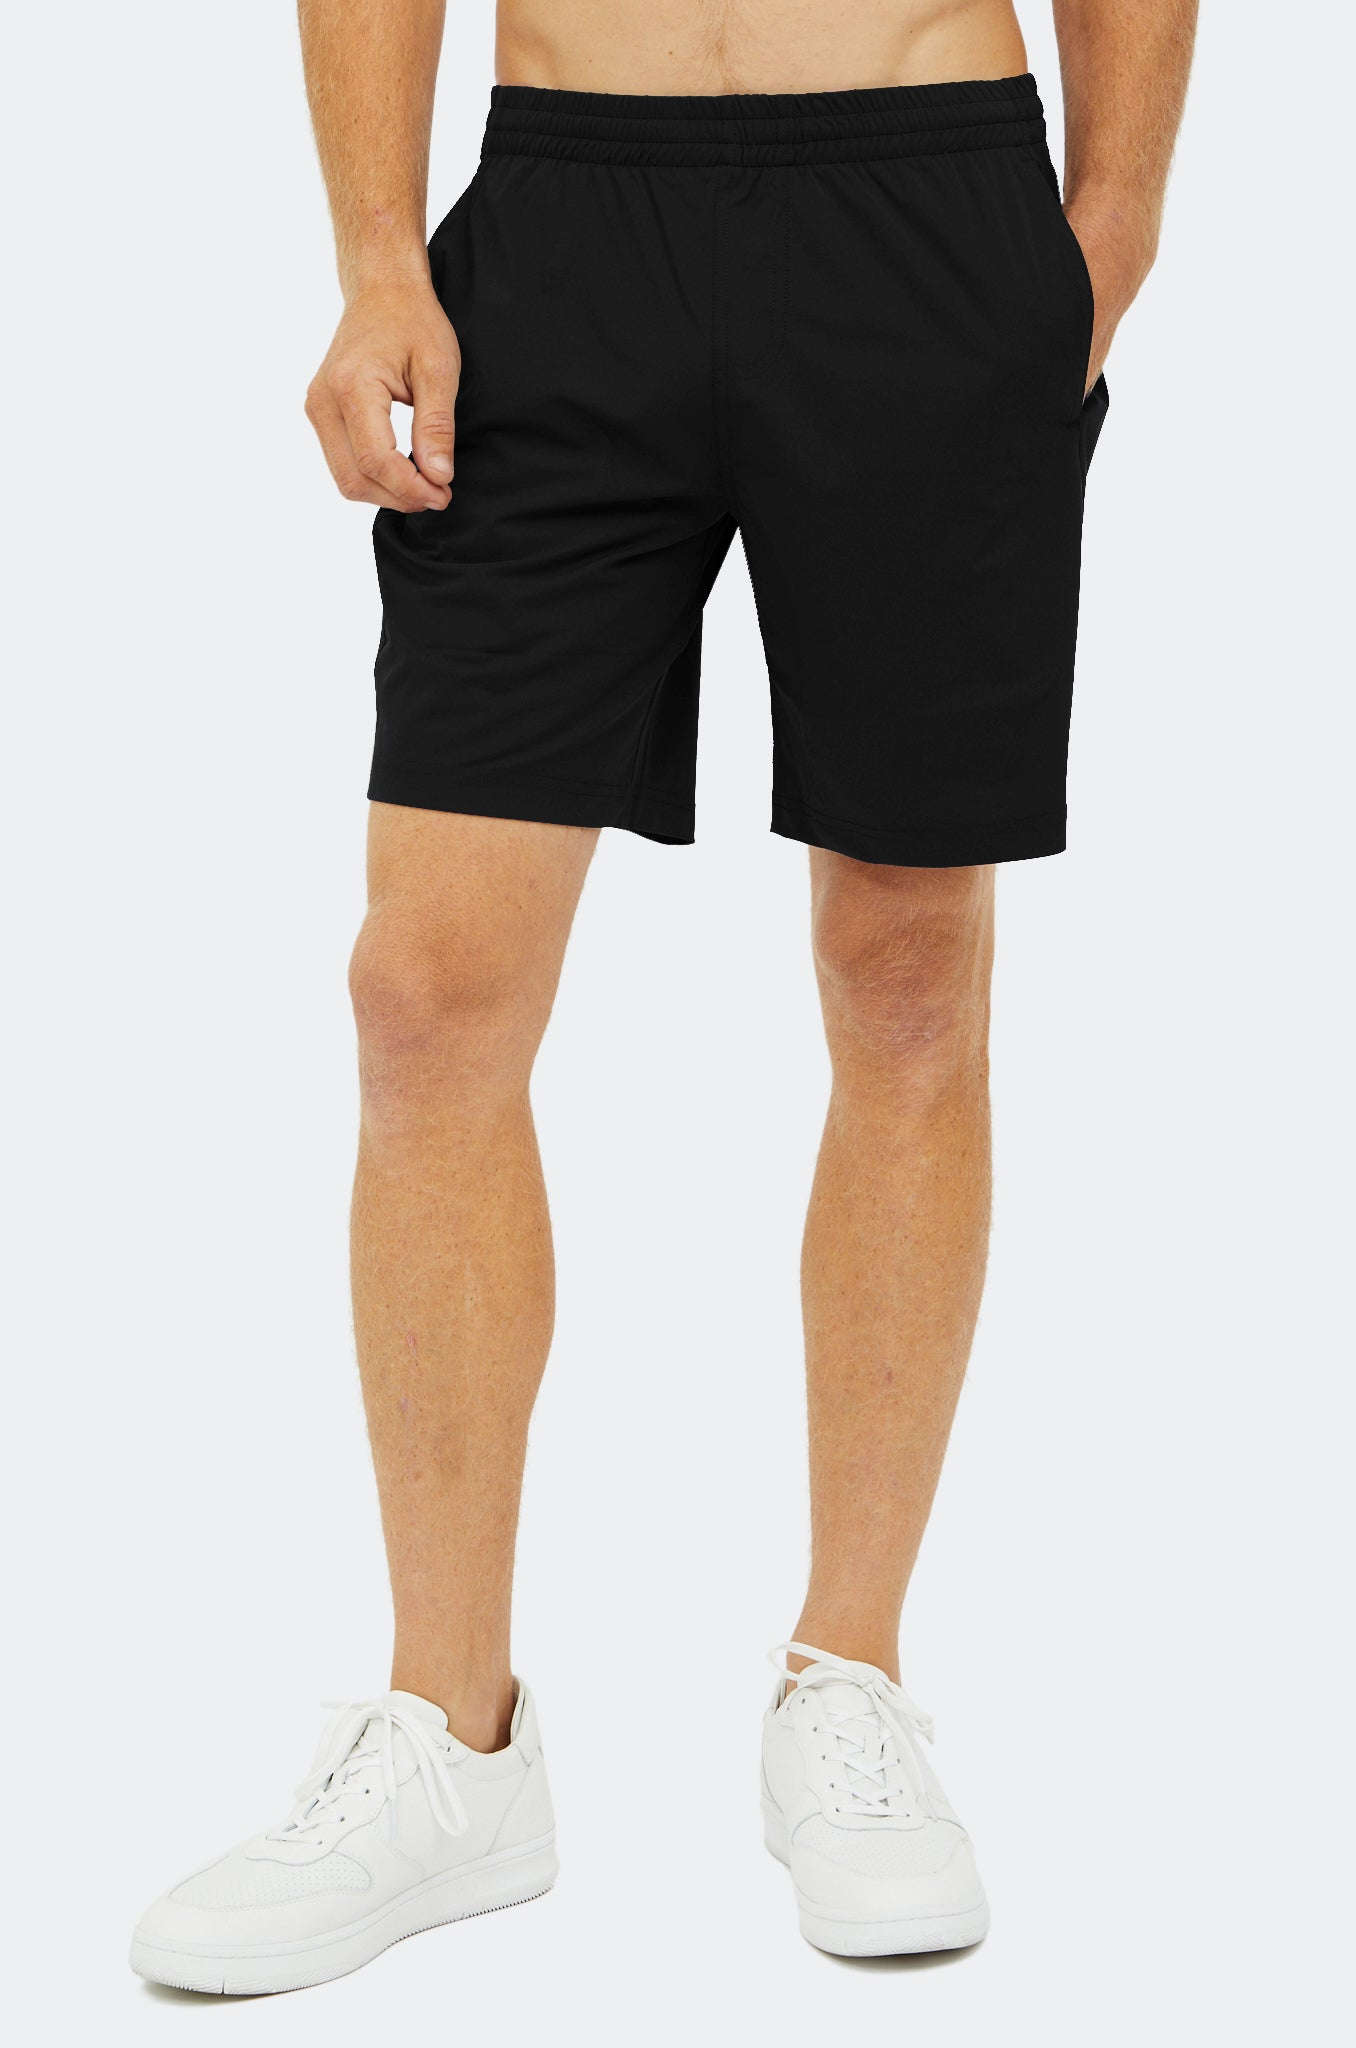 Byron Short in Black